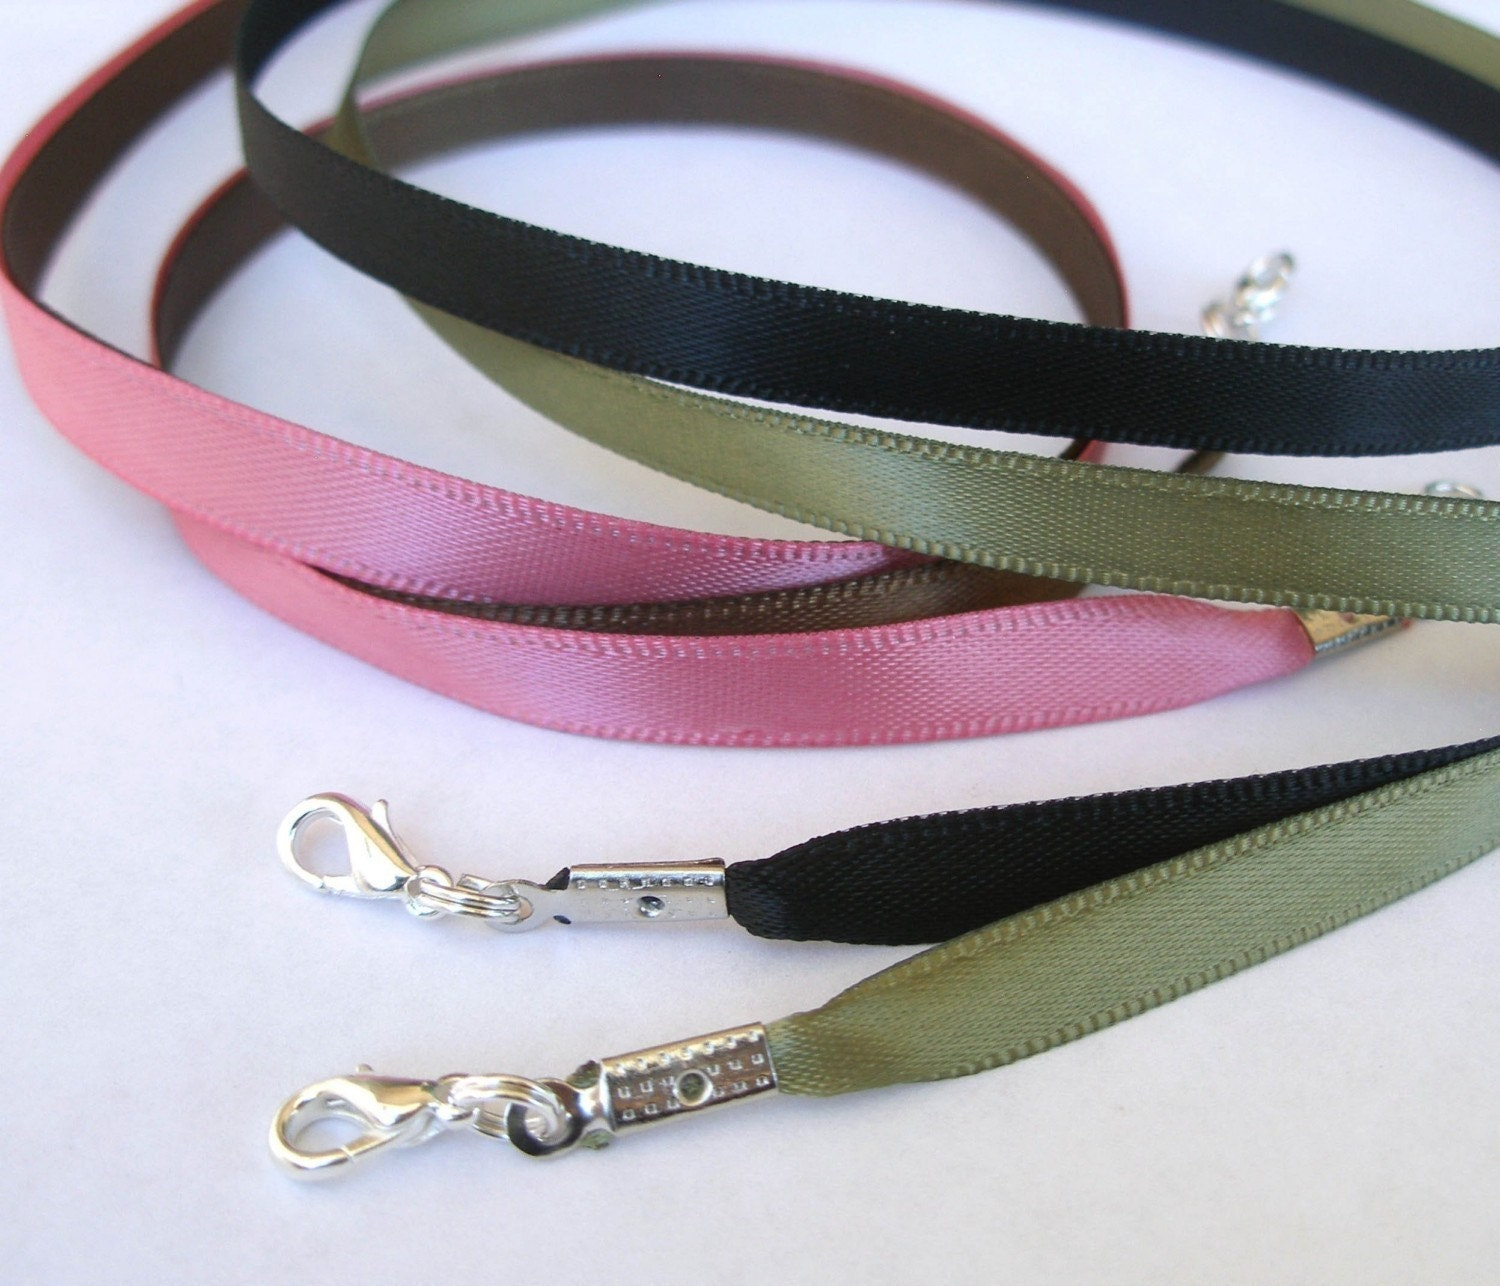 20 - Satin Necklace Cords - Any Length, 16 Colors - for Scrabble/Glass Tile Pendants all Aanraku bails- Handmade in USA